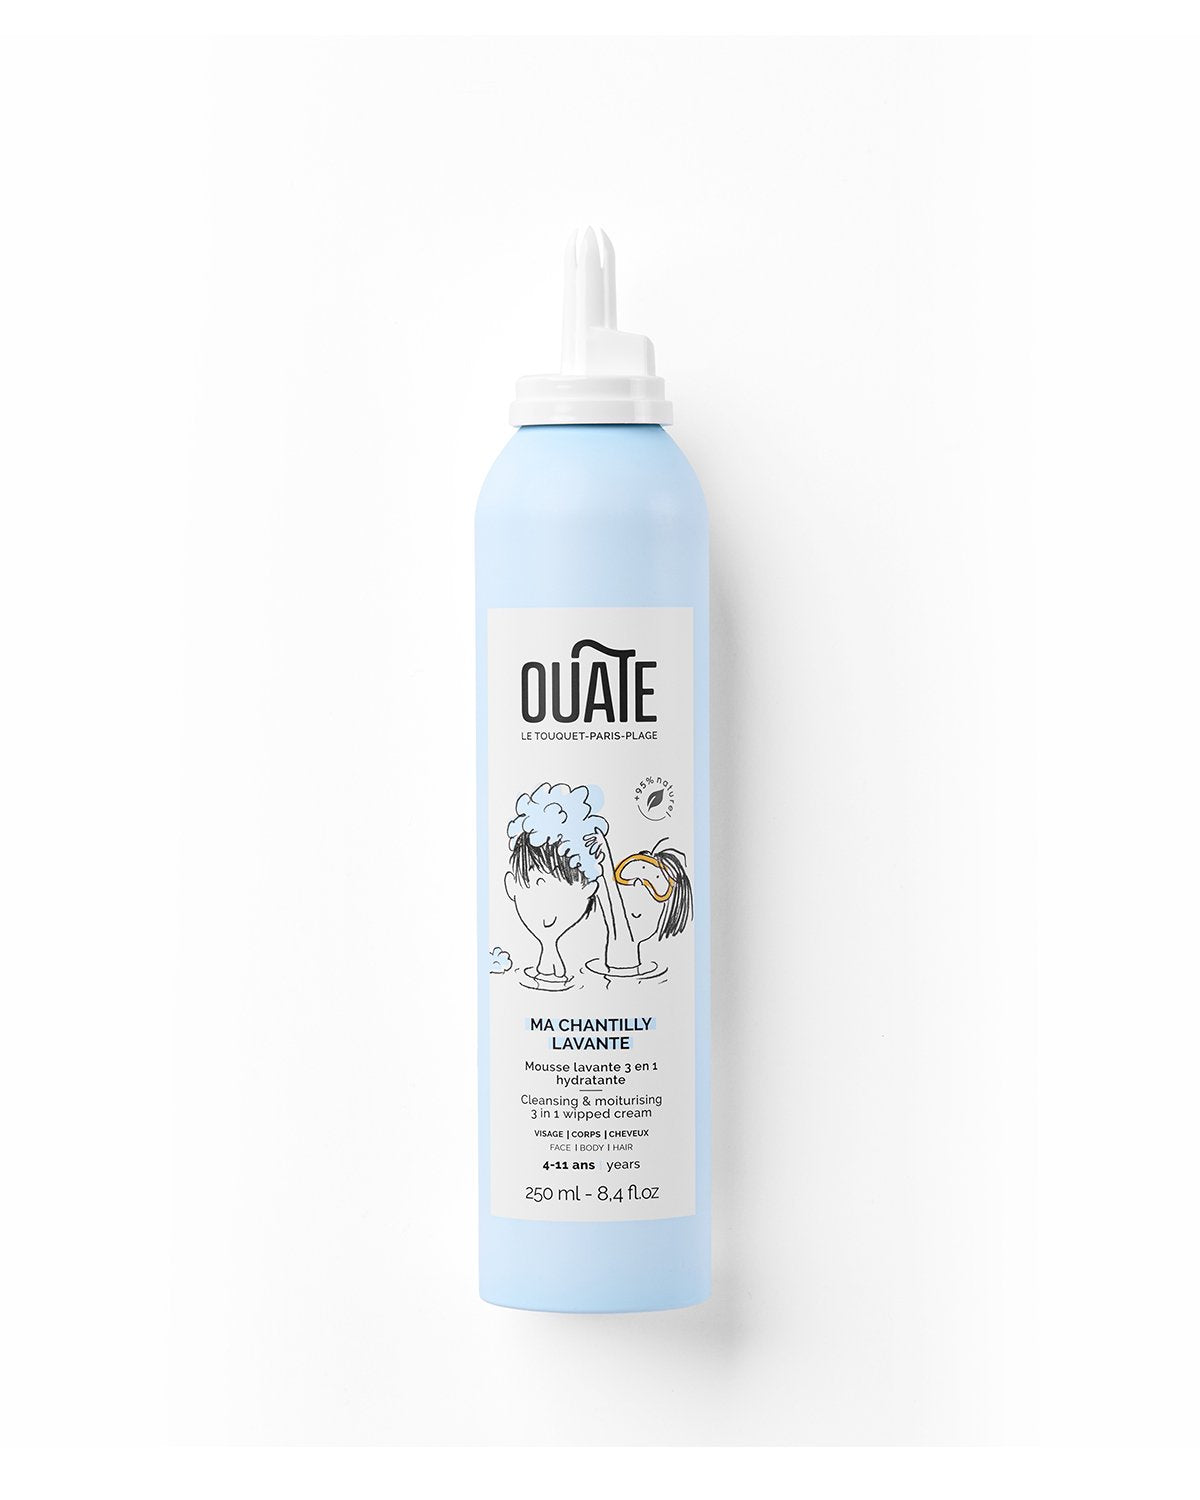 OUATE Face MY CLEANSING WHIPPED CREAM Unisex (quantity: 2)